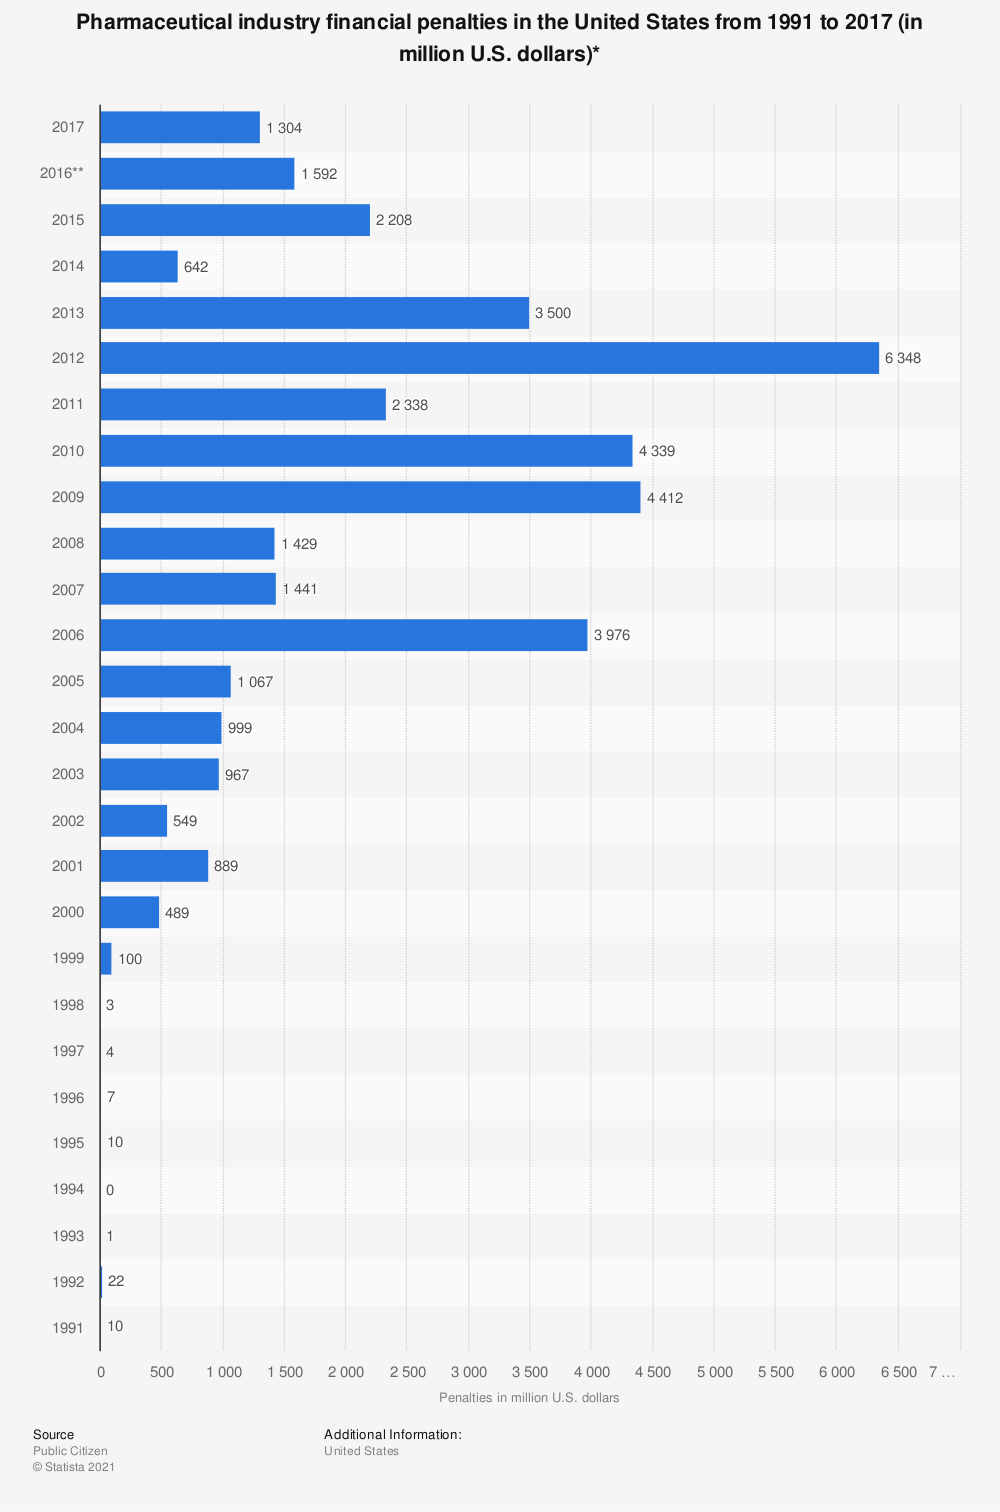 Statistic: Pharmaceutical industry financial penalties in the United States from 1991 to 2017 (in million U.S. dollars)* | Statista